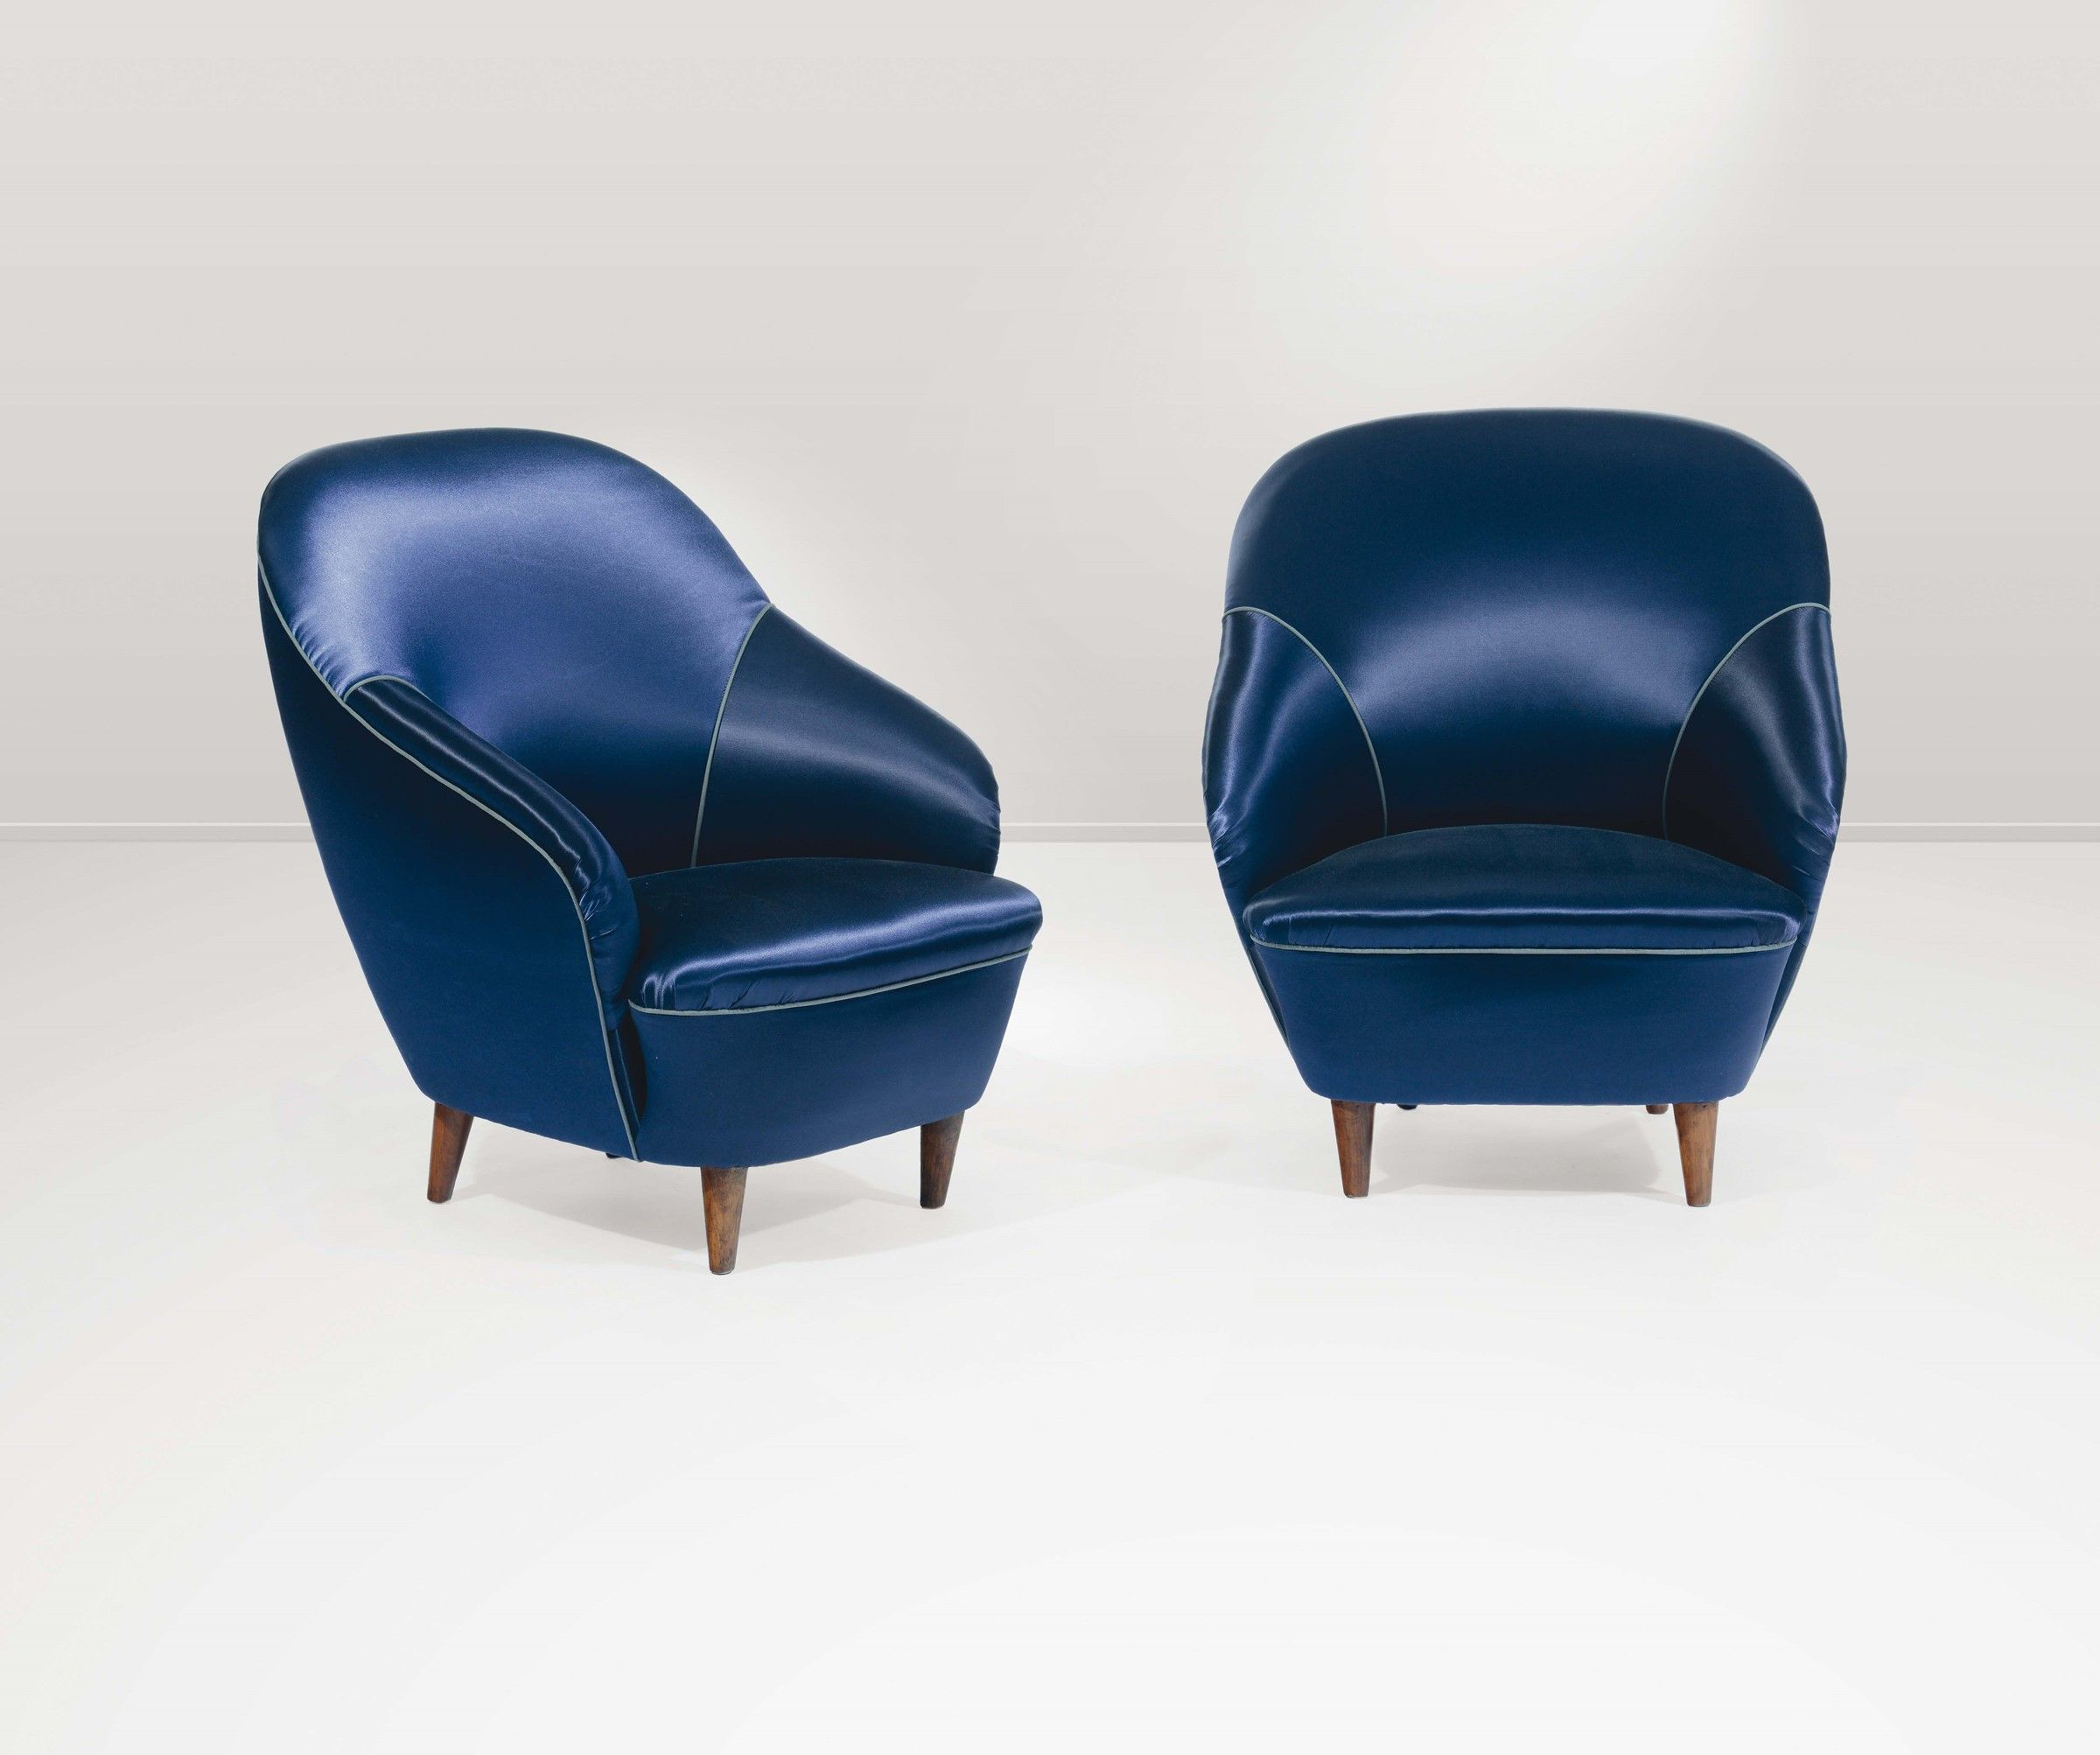 Ami Il Design Anni '50 ? Allora Lasciati Ispirare Da Queste Regarding Abbottsmoor Barrel Chair And Ottoman Sets (View 6 of 15)